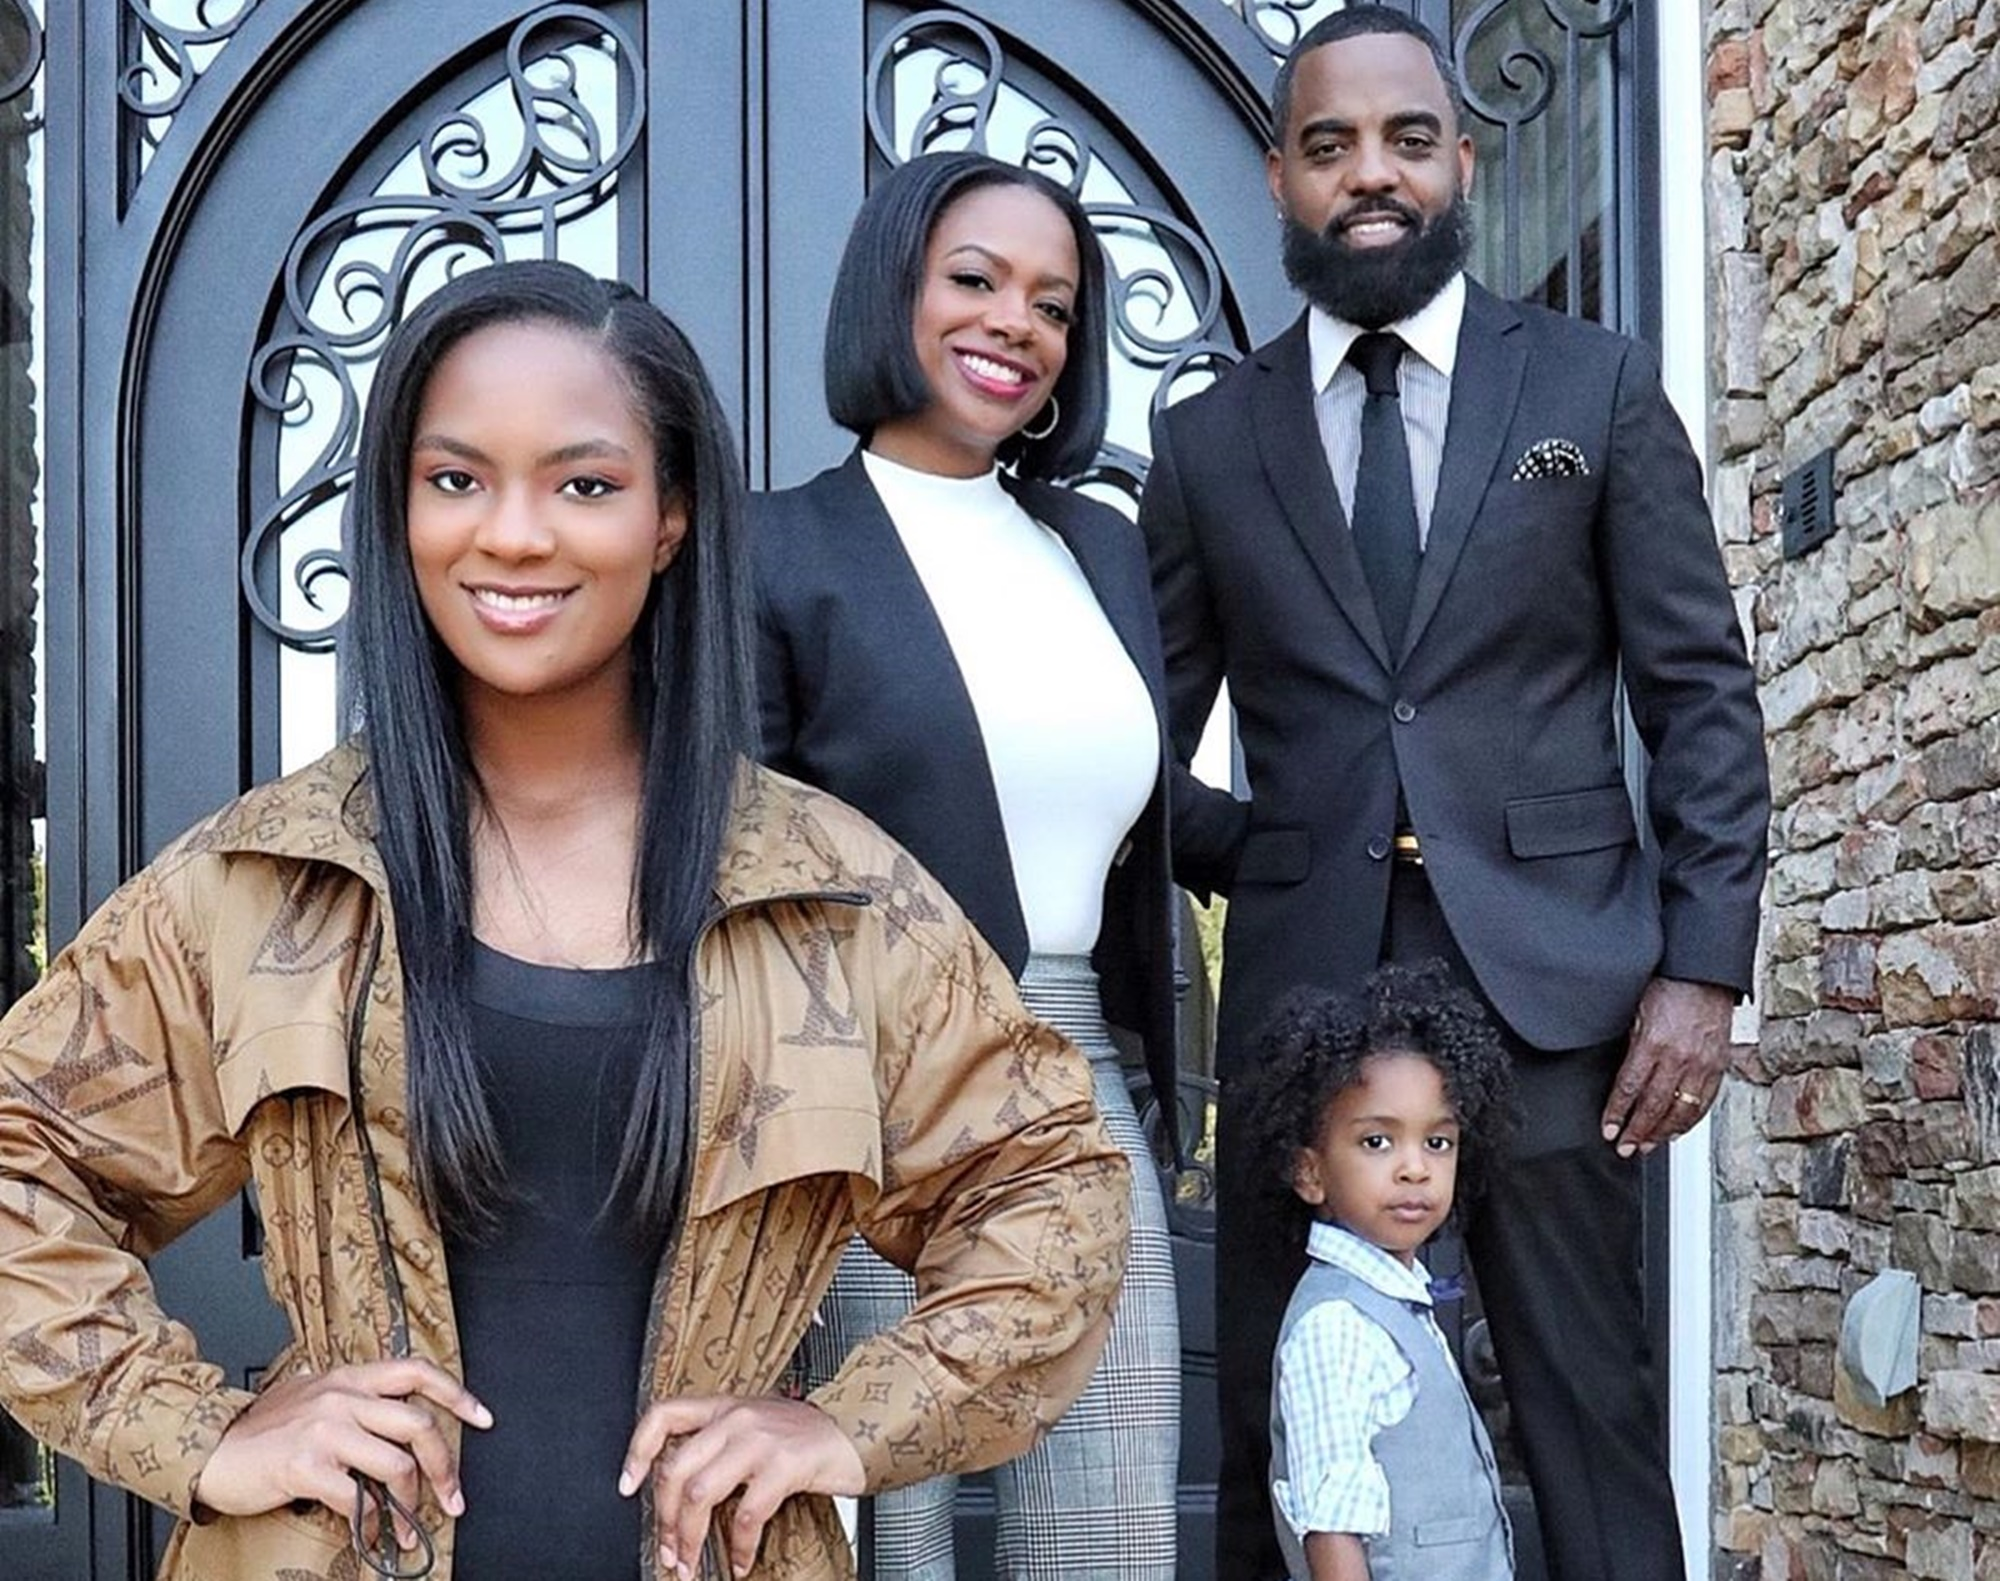 kandi-burruss-and-todd-tucker-share-picture-from-their-family-trip-with-their-beautiful-daughters-wearing-identical-outfits